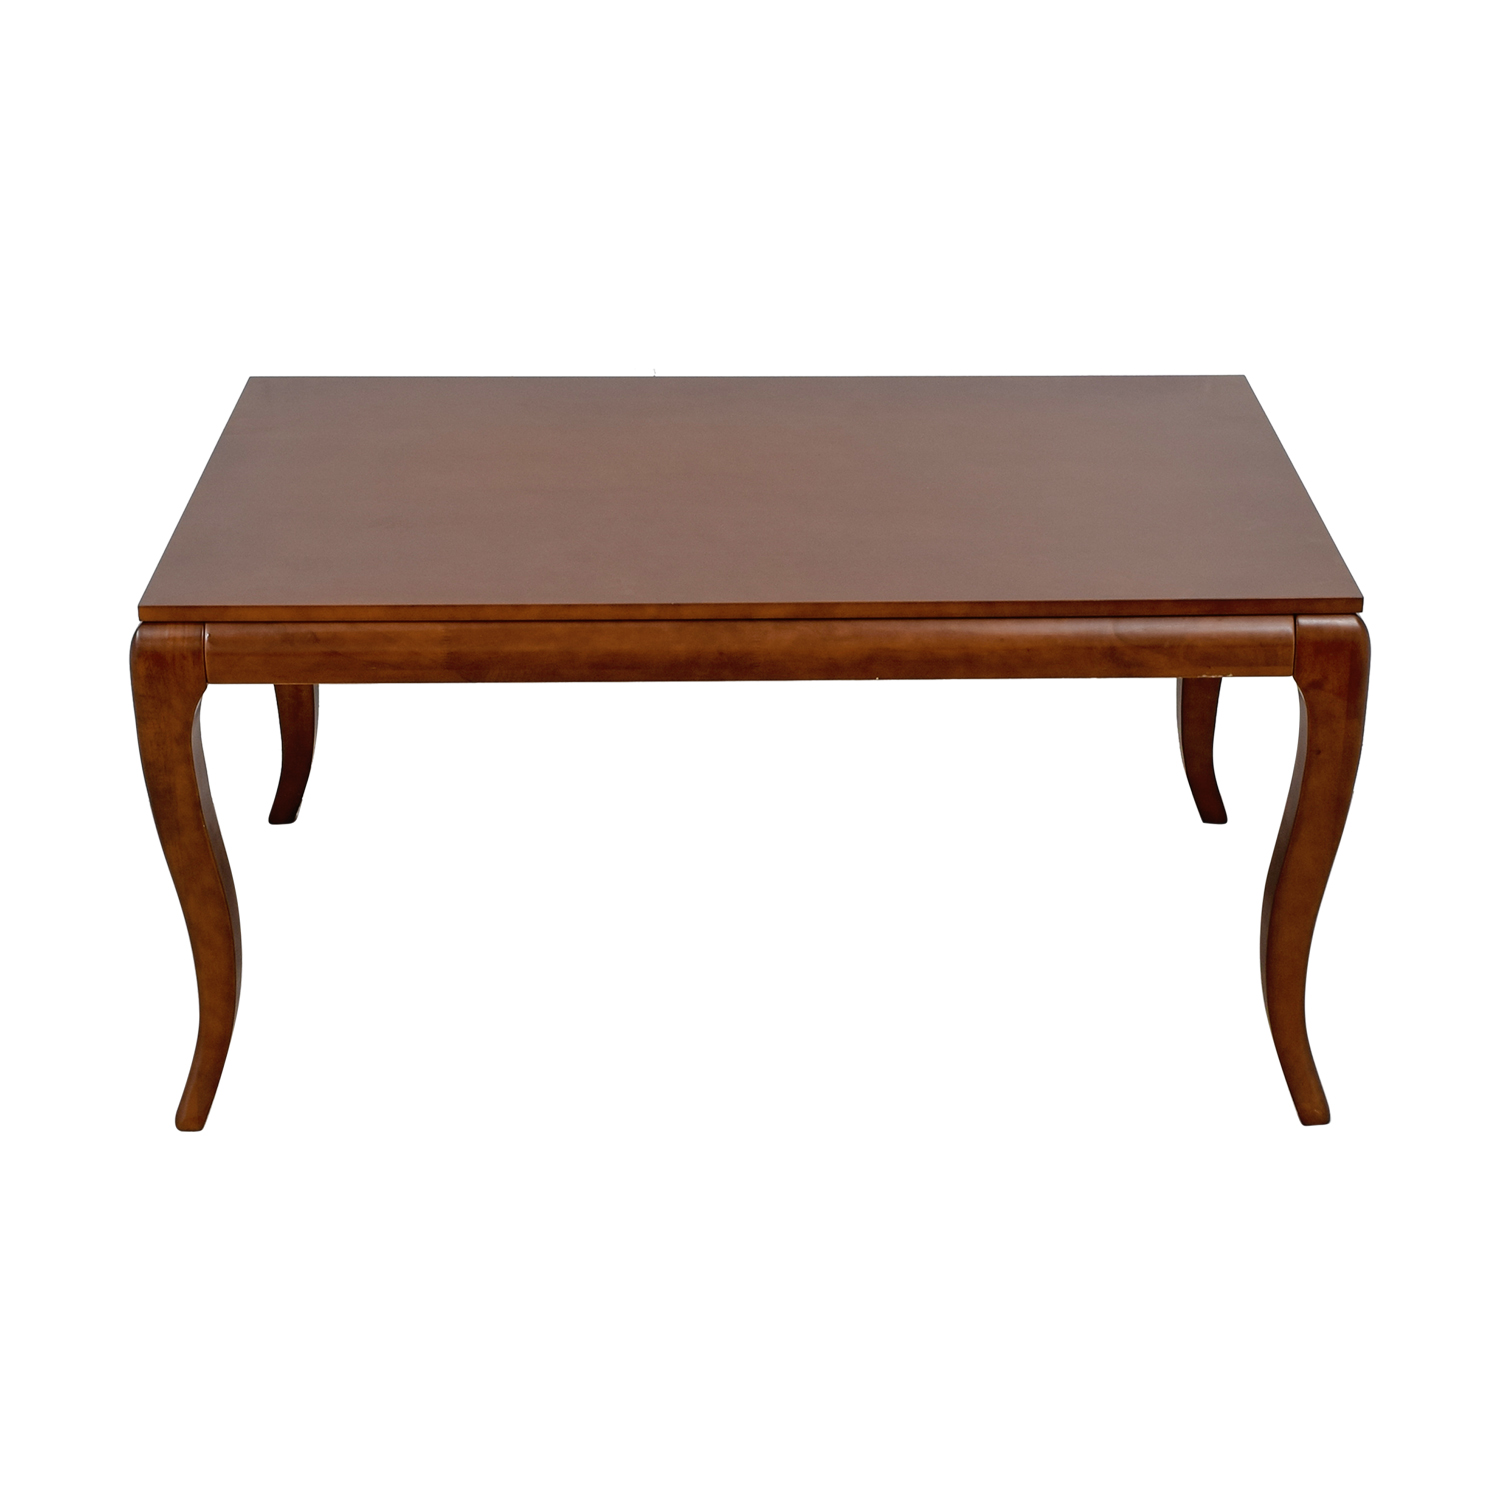 Classic Rectangular Dining Table for sale